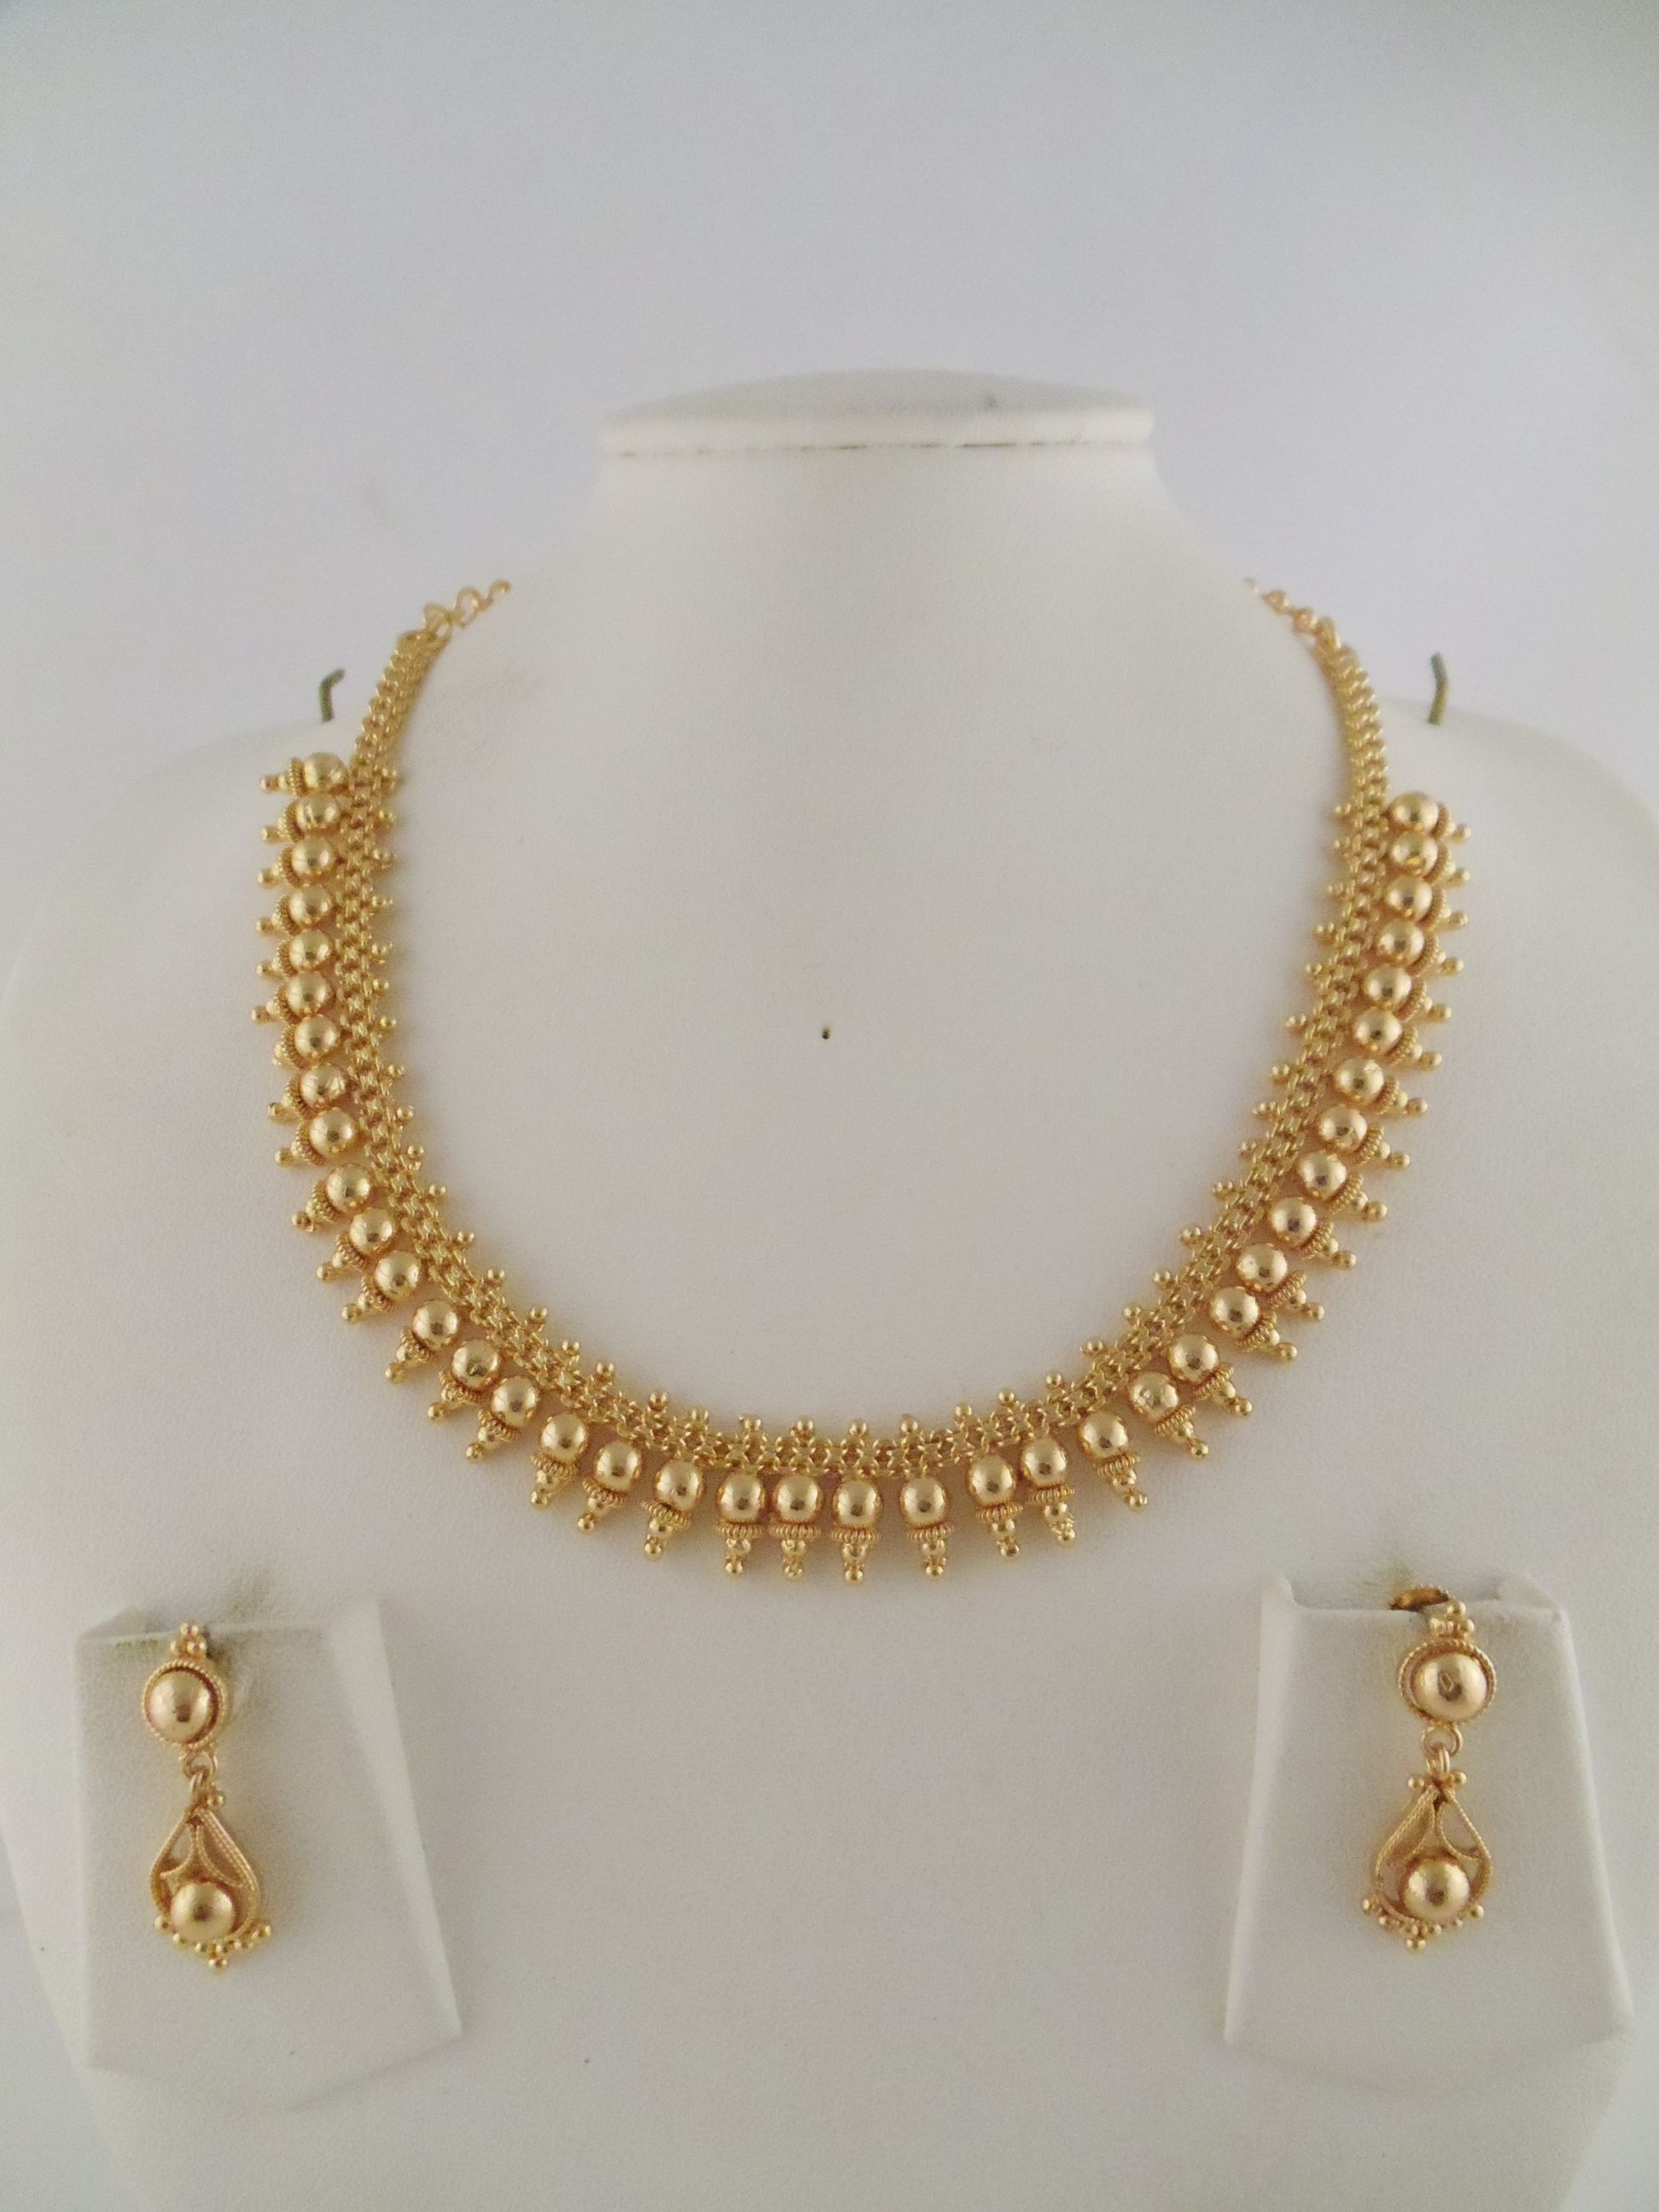 xhjodsk gold indian in set own its diamond bingefashion jewelry necklace beauty